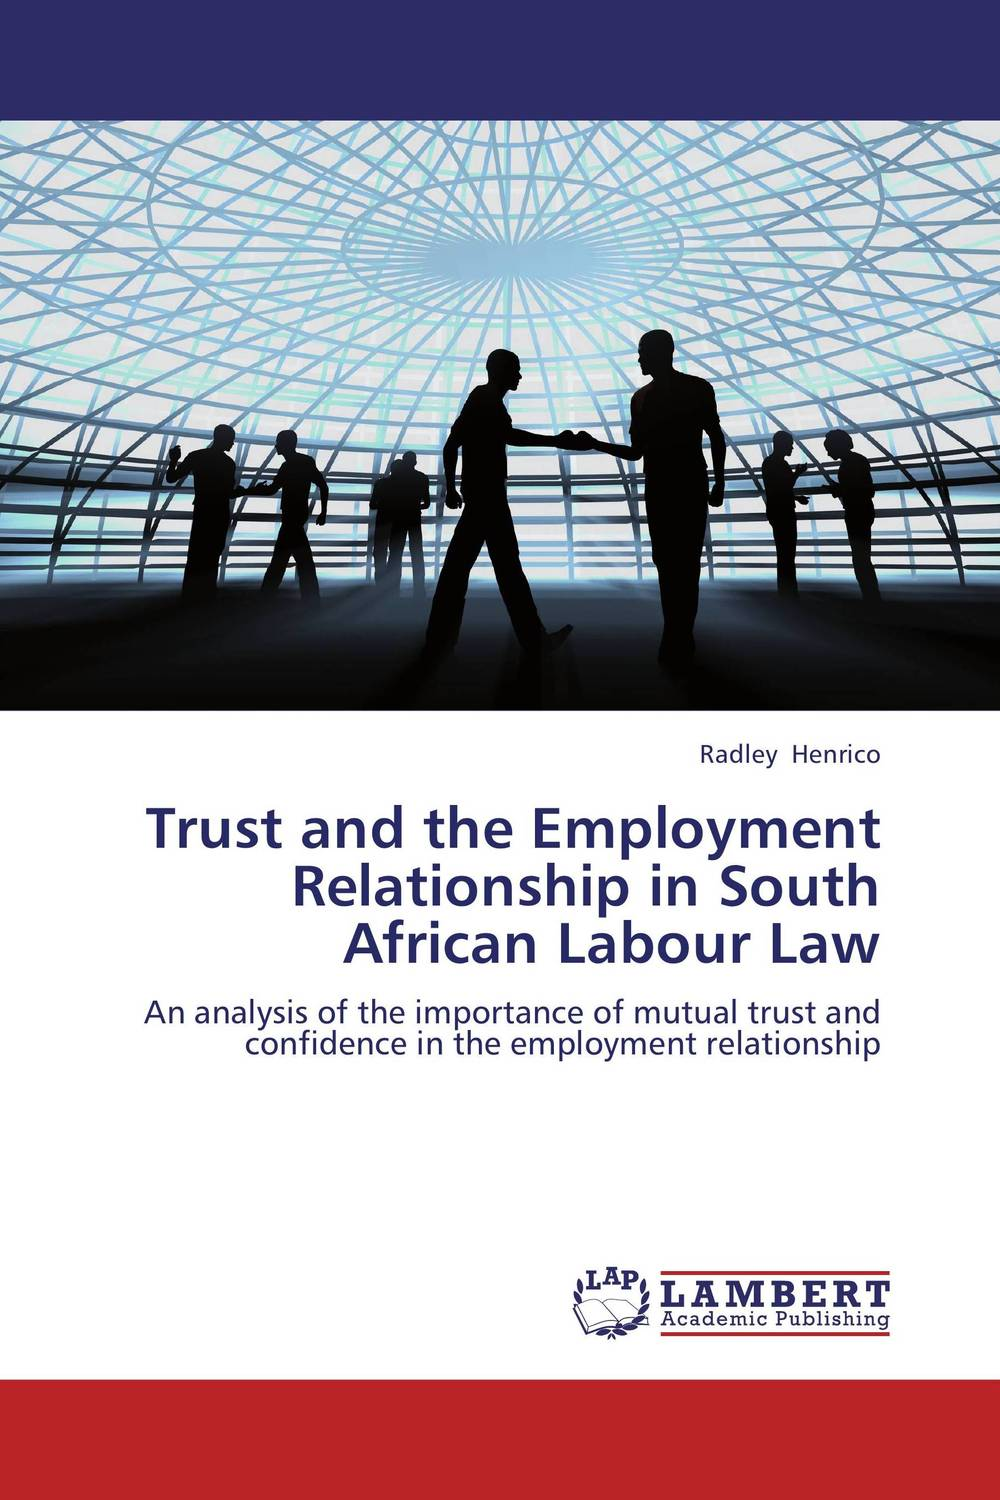 Trust and the Employment Relationship in South African Labour Law stories of care a labour of law